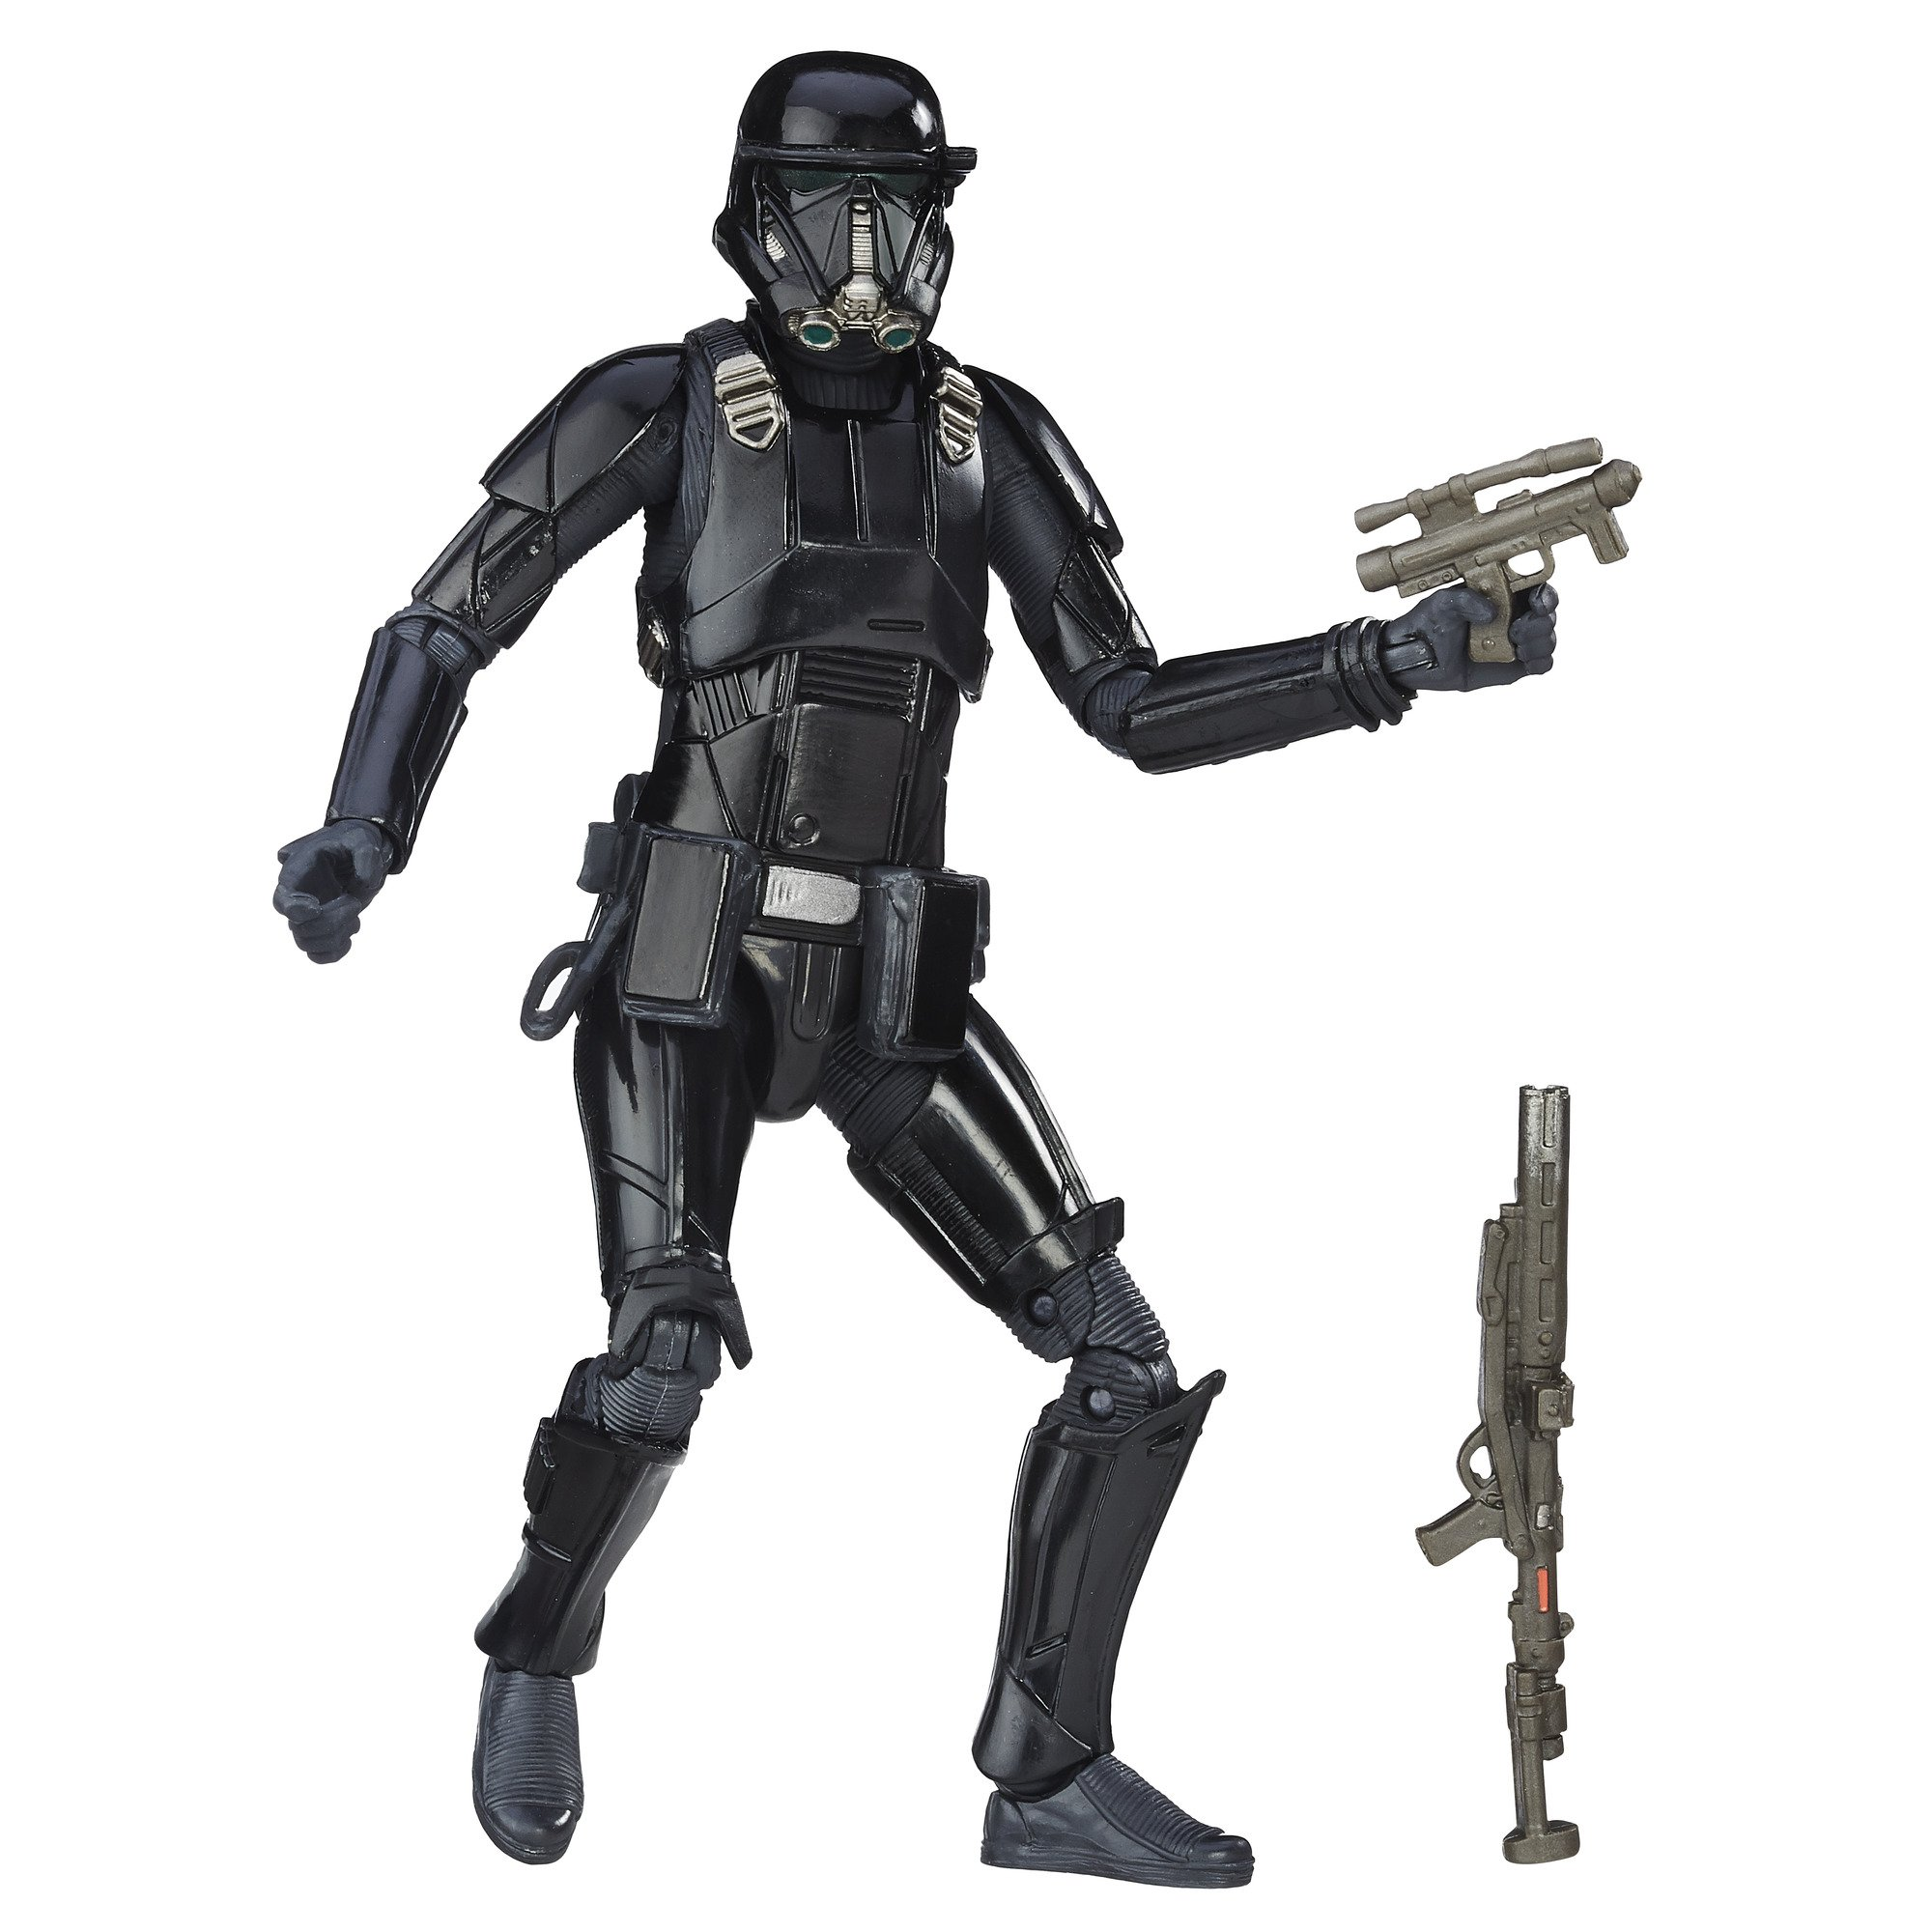 Star Wars Rogue One Imperial Death Trooper 3.75 Inch